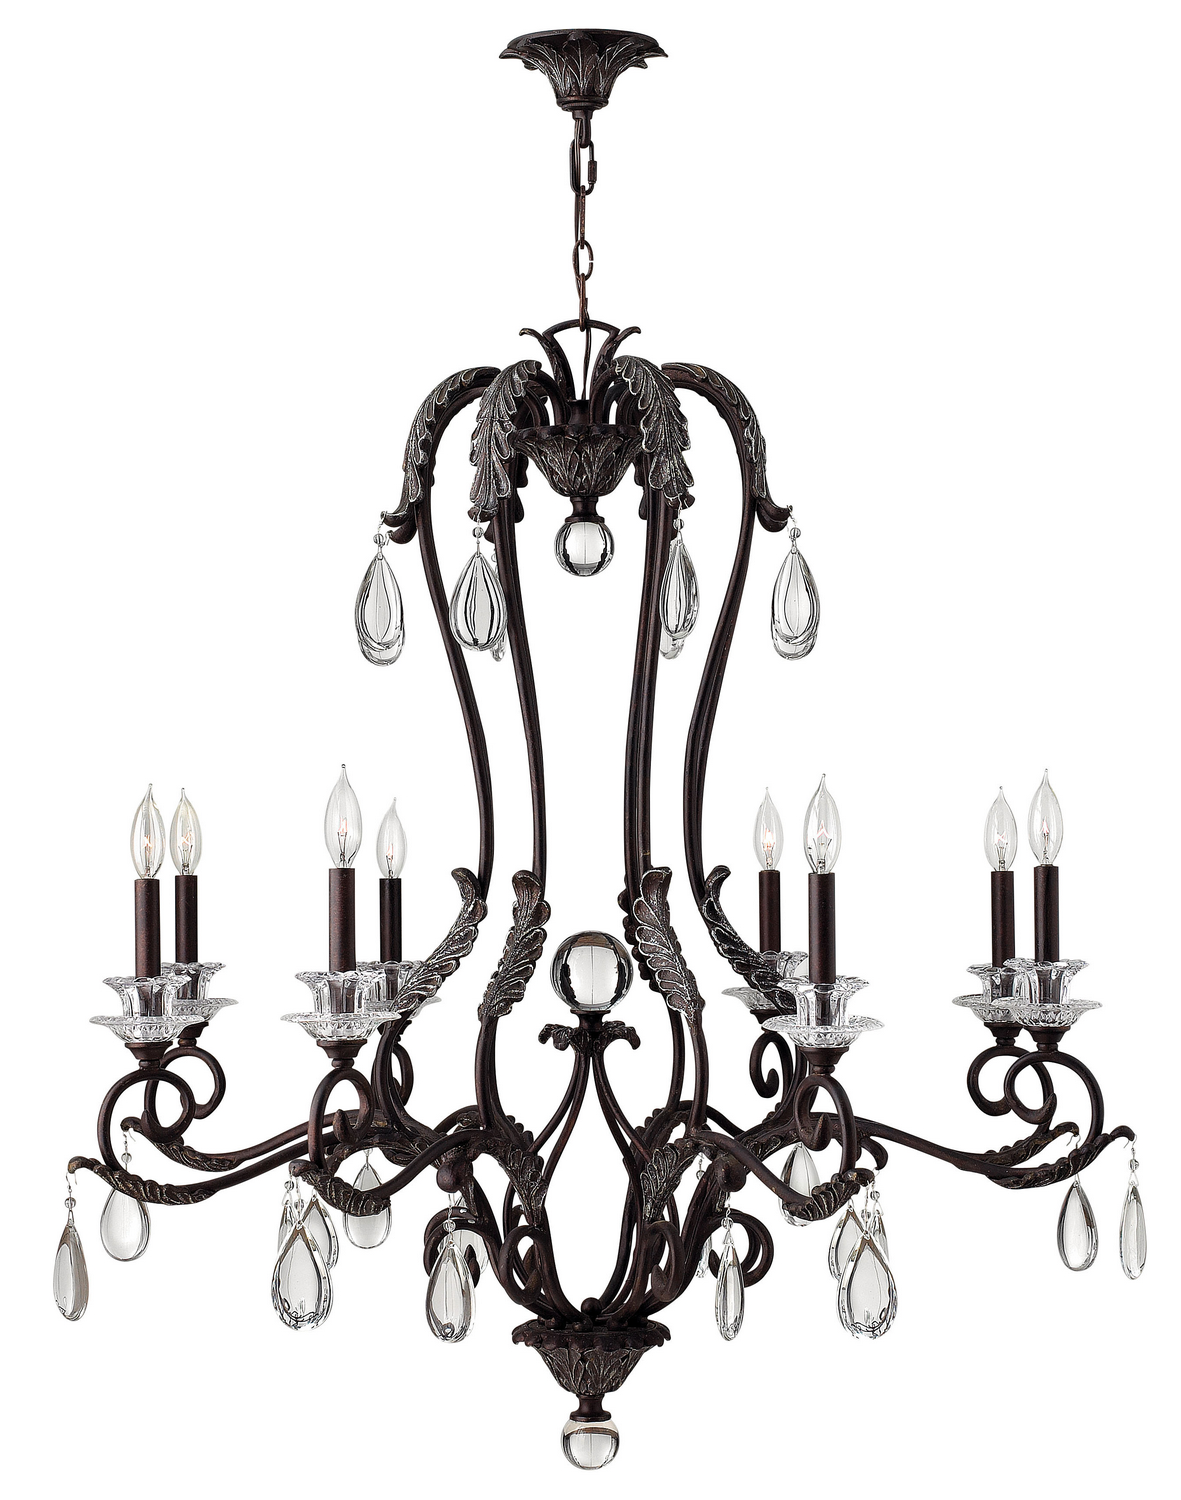 Eight Light Foyer Pendant from the Marcellina collection by Hinkley 4404GR